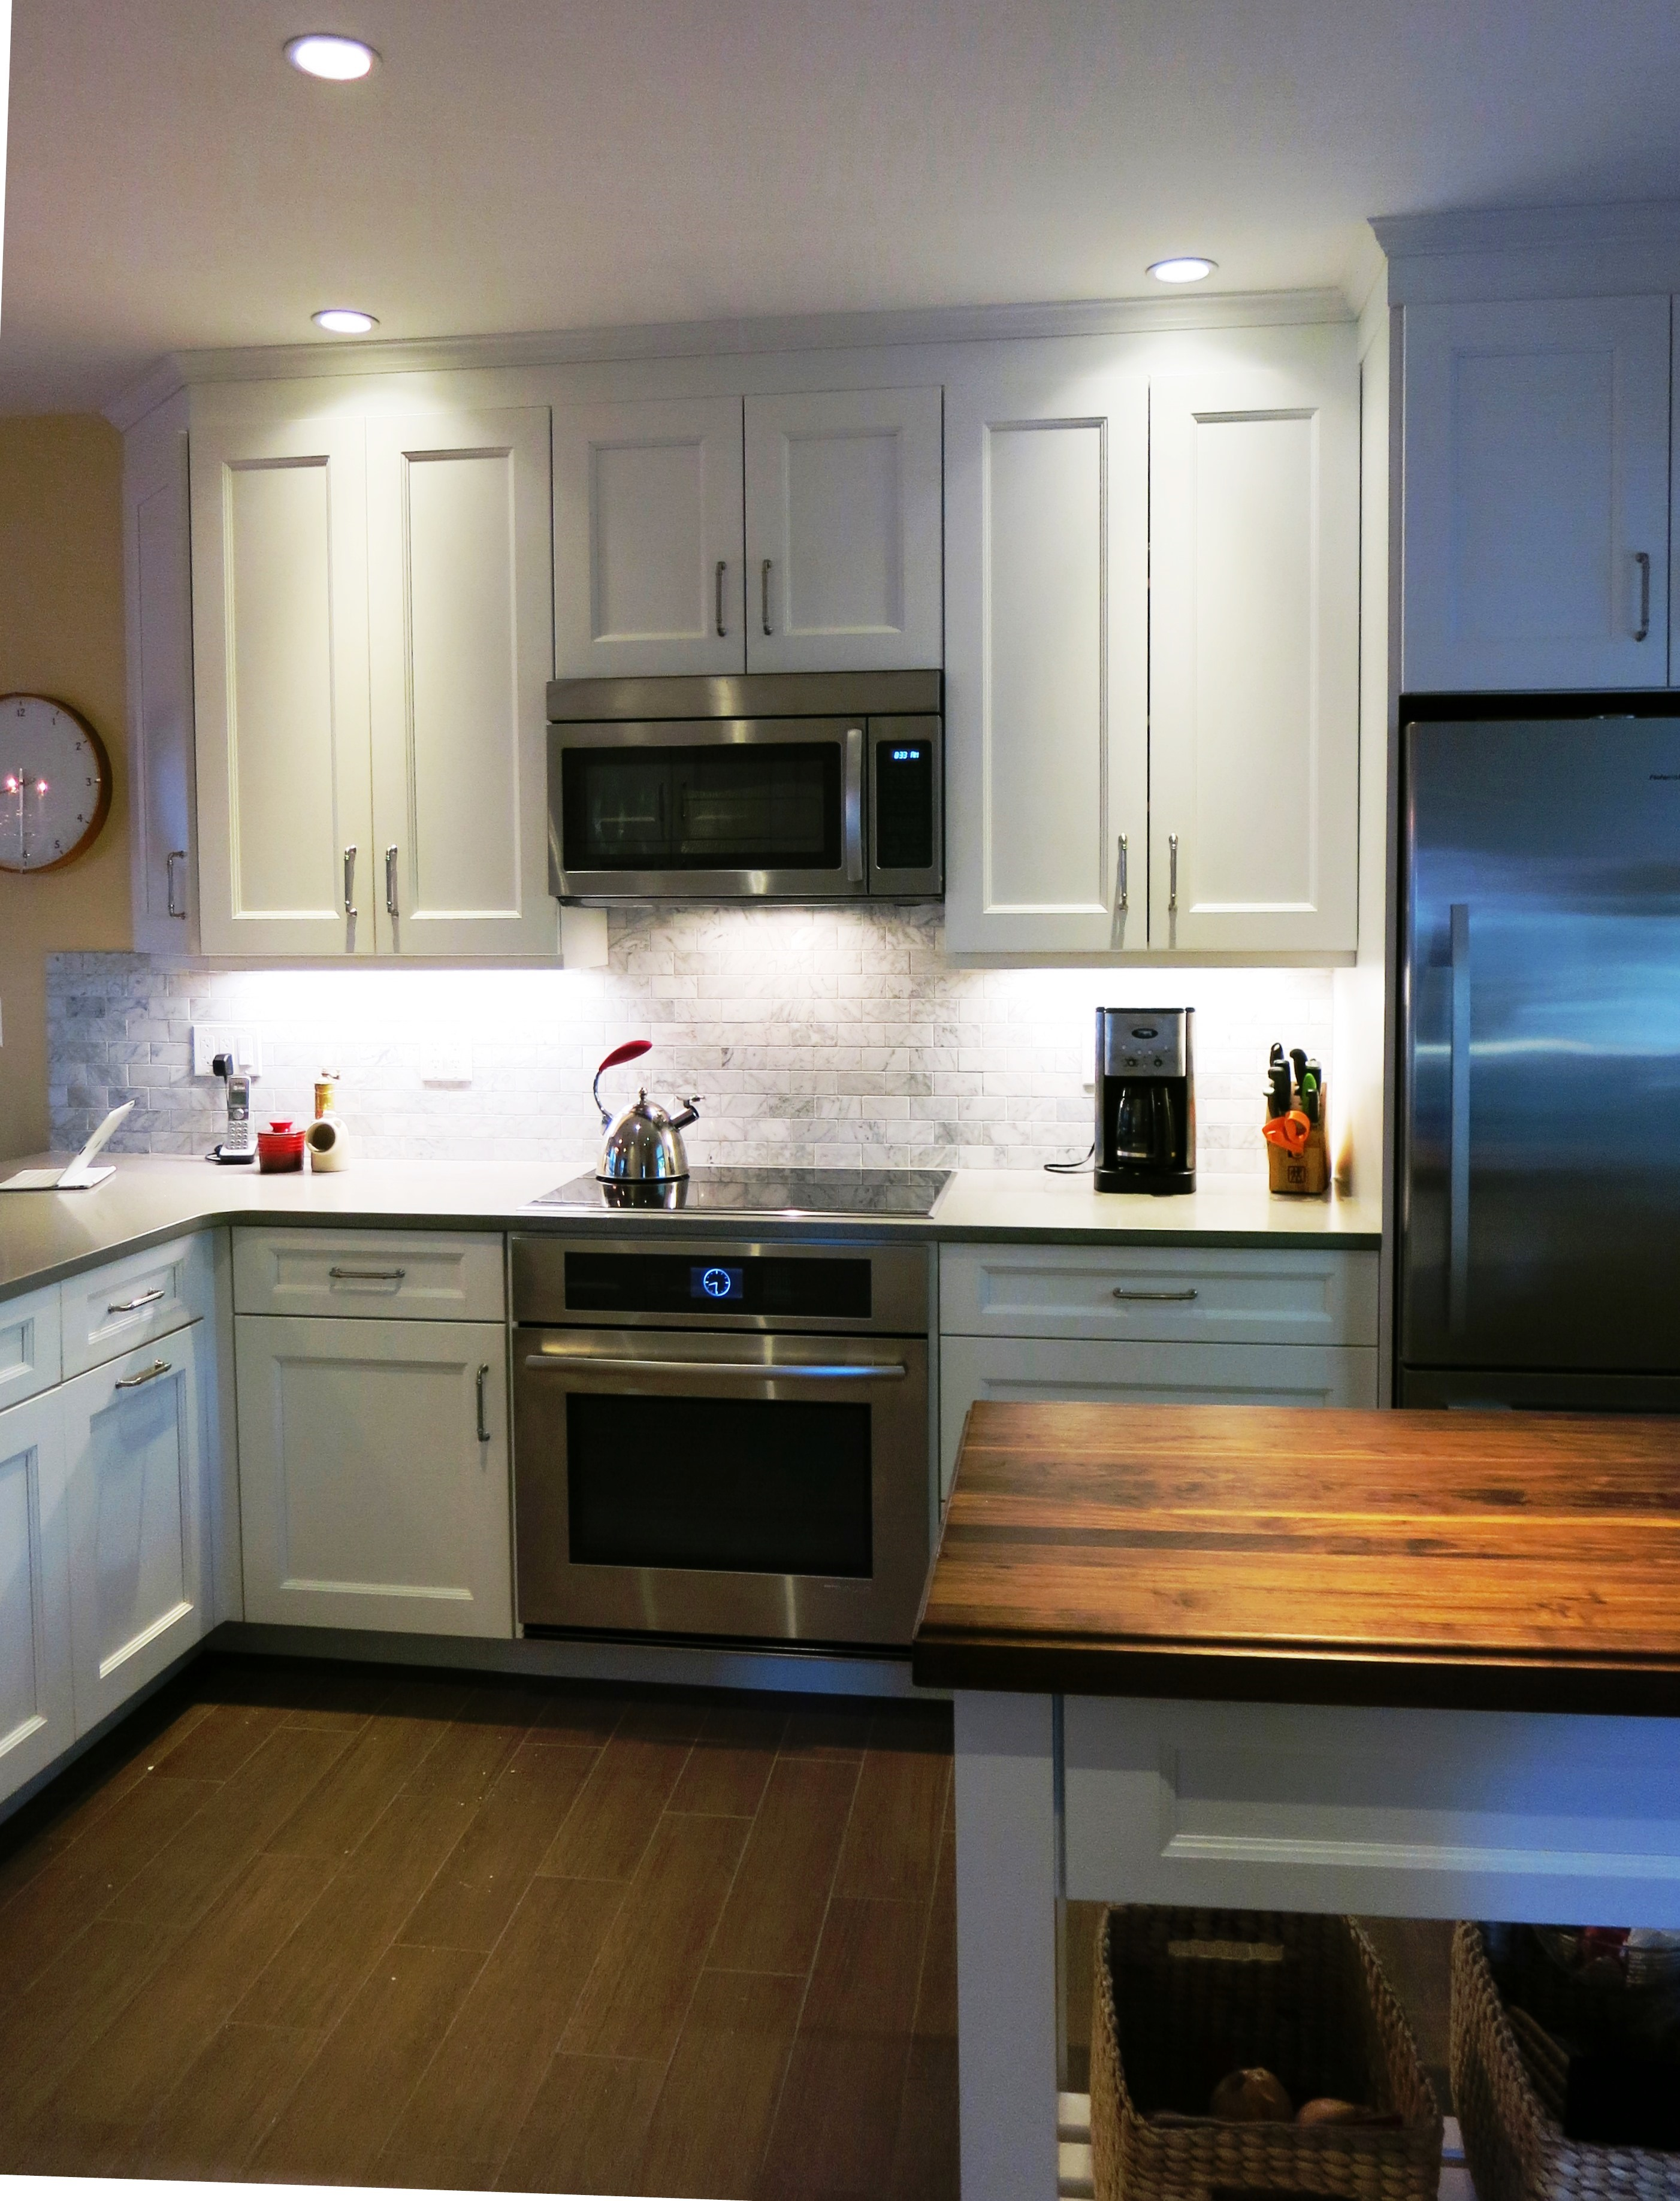 Cooking For Two Can Be A Bit Tricky If Your Kitchen Lacks Working Space.  You Both Need Space To Prepare, Eat And Entertain Together.